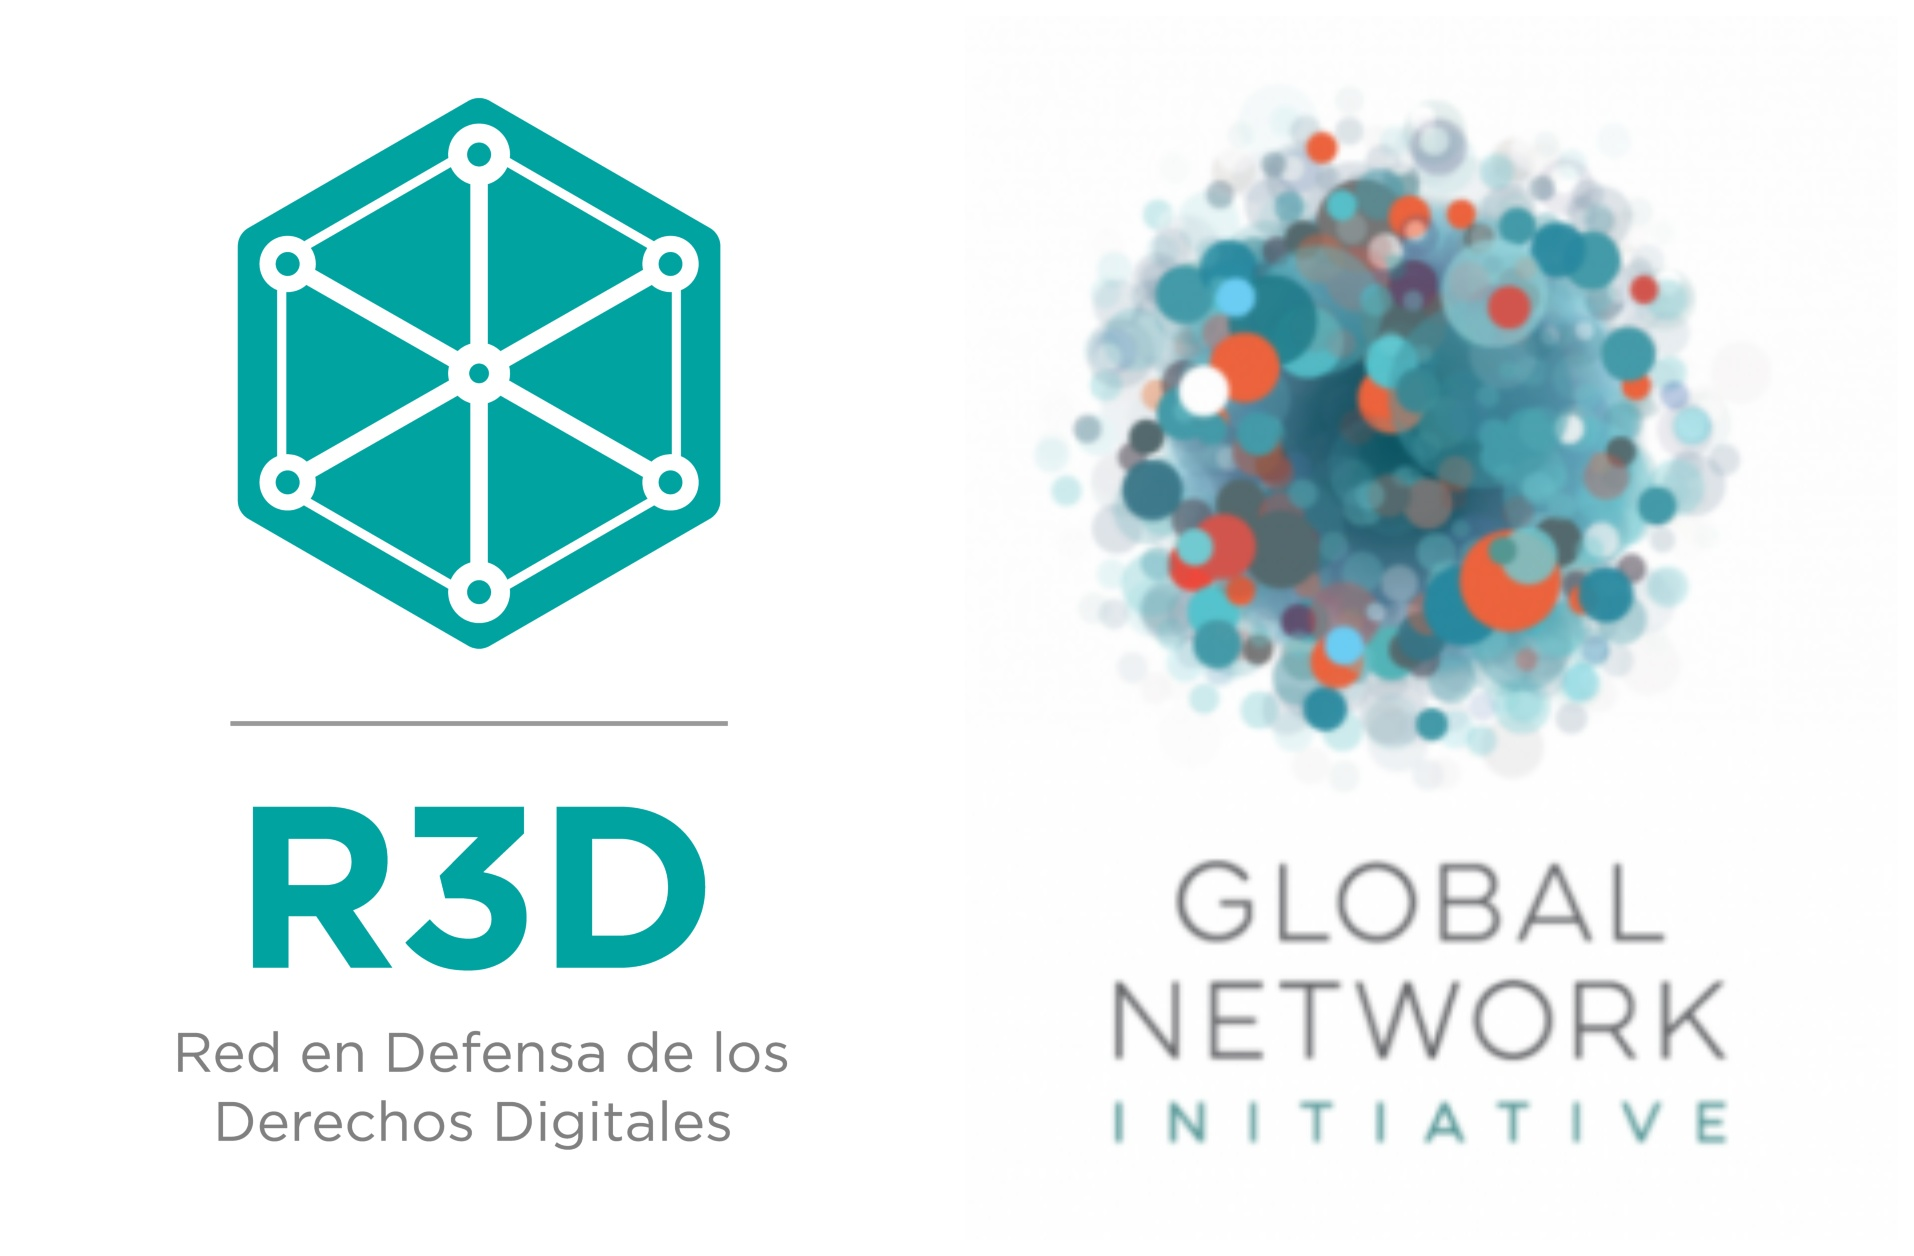 R3D se integra a la Global Network Initiative